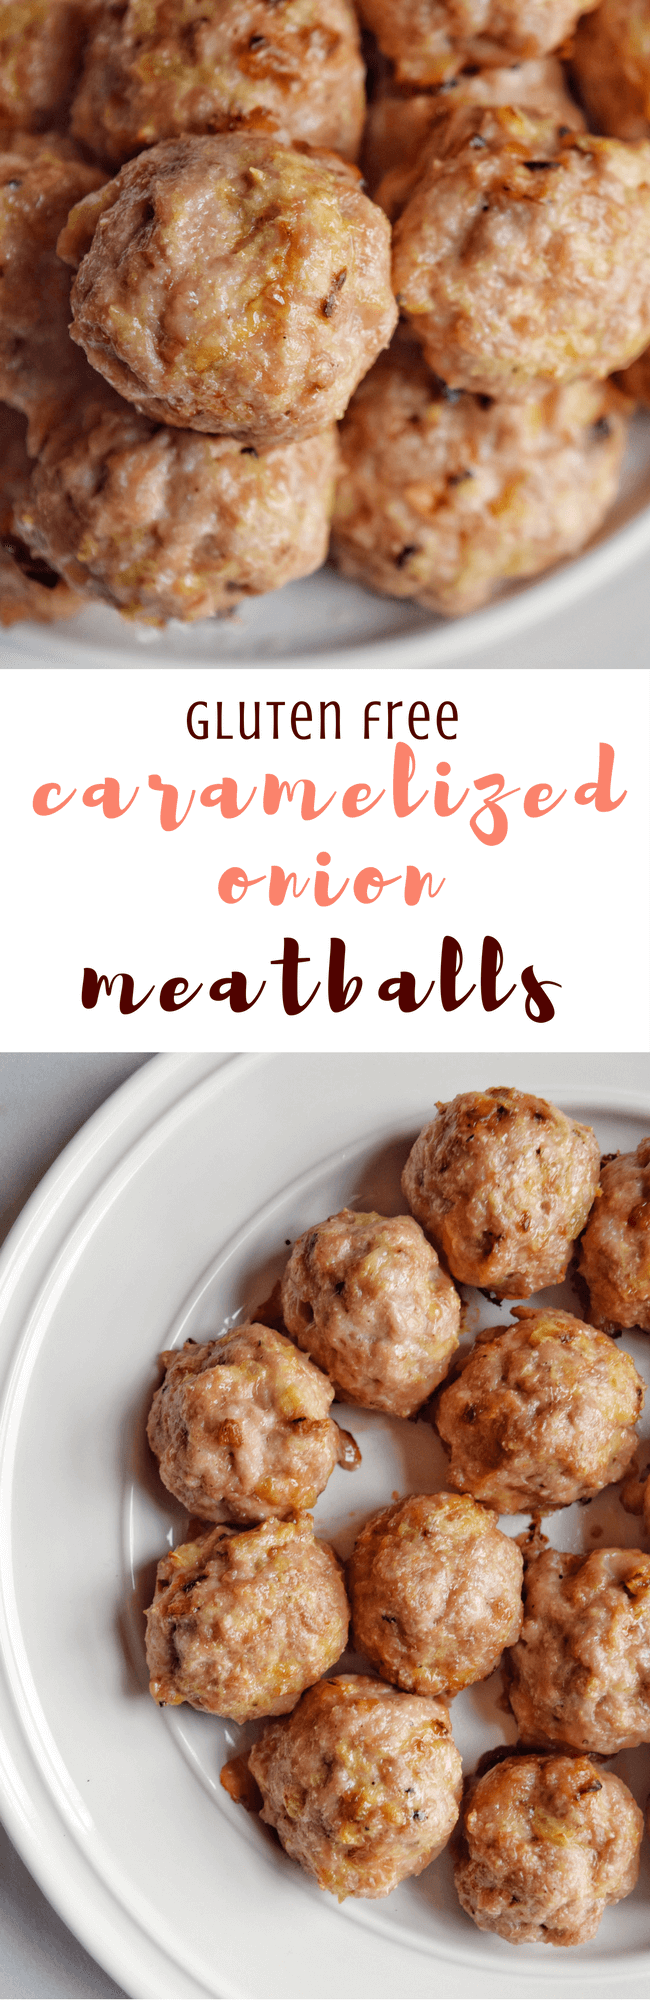 Gluten Free Caramelized Onion Meatballs (Paleo, Sugar Free) | Personally Paleo